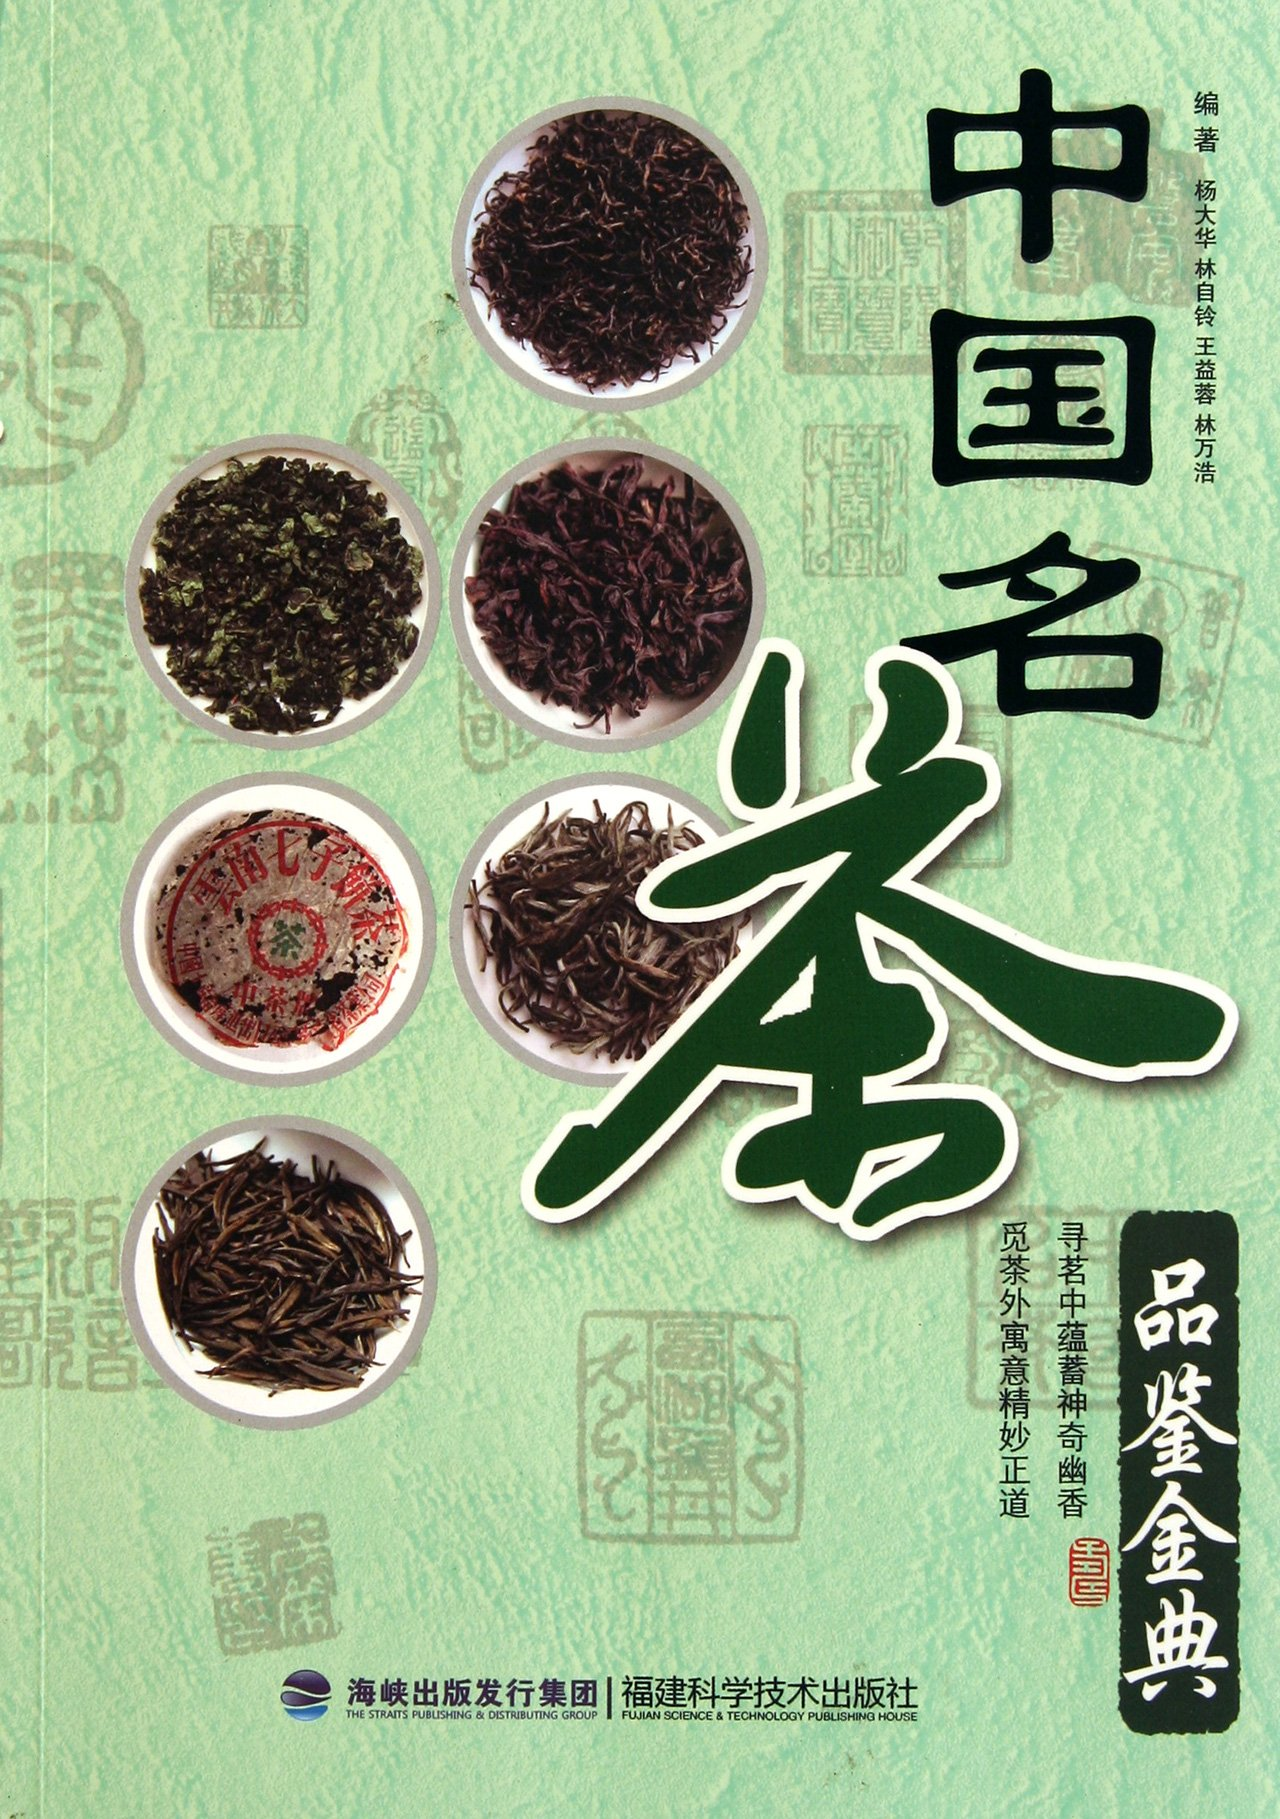 Classics of Top Chinese Tea Tasting and Appreciation (Chinese Edition) PDF